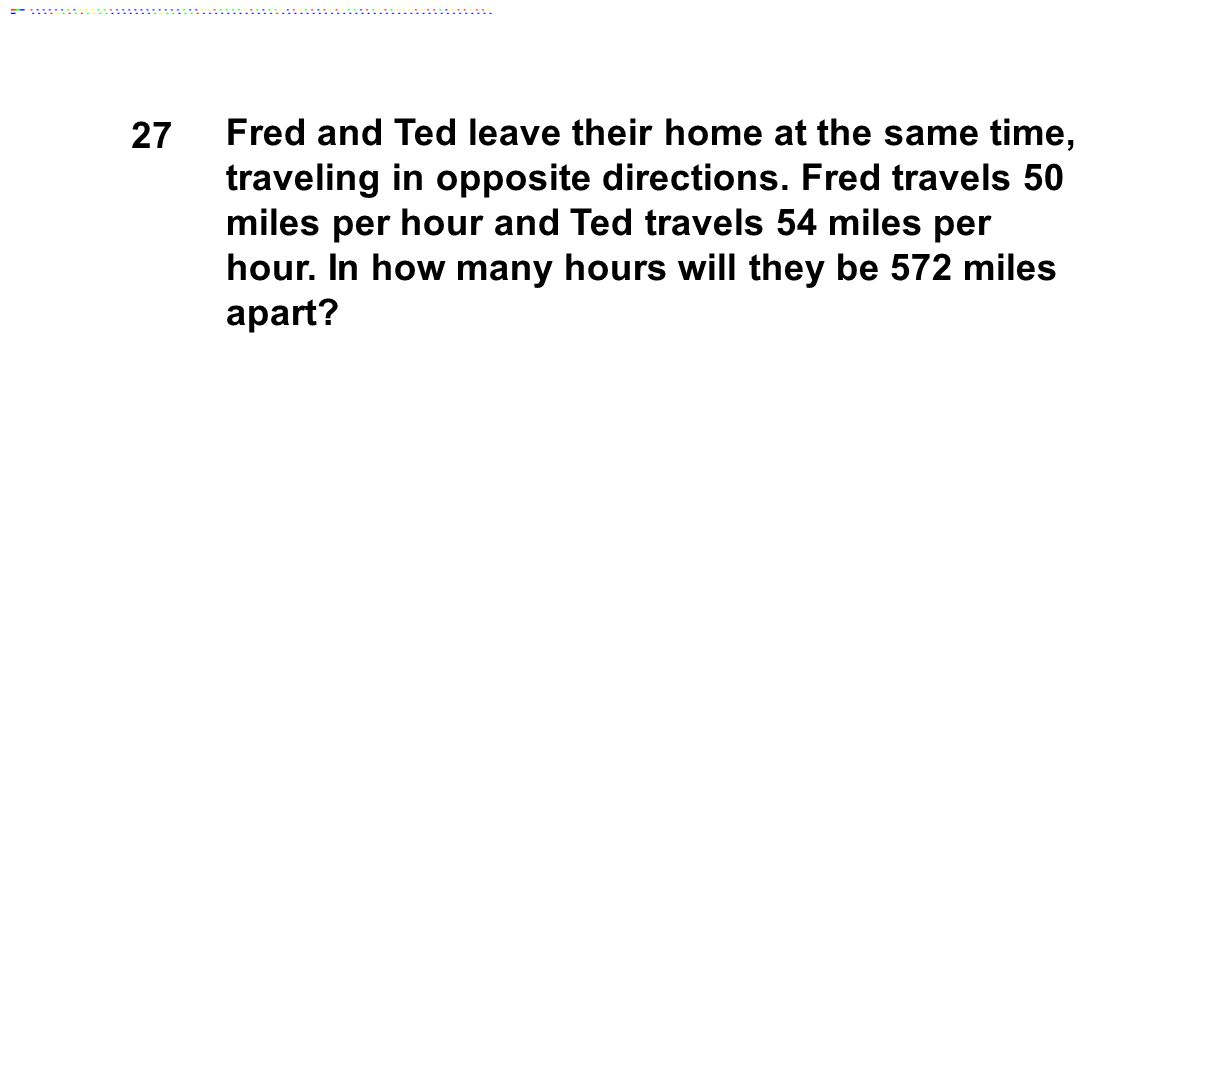 27 Fred and Ted leave their home at the same time, traveling in opposite directions. Fred travels 50 miles per hour and Ted travels 54 miles per hour.